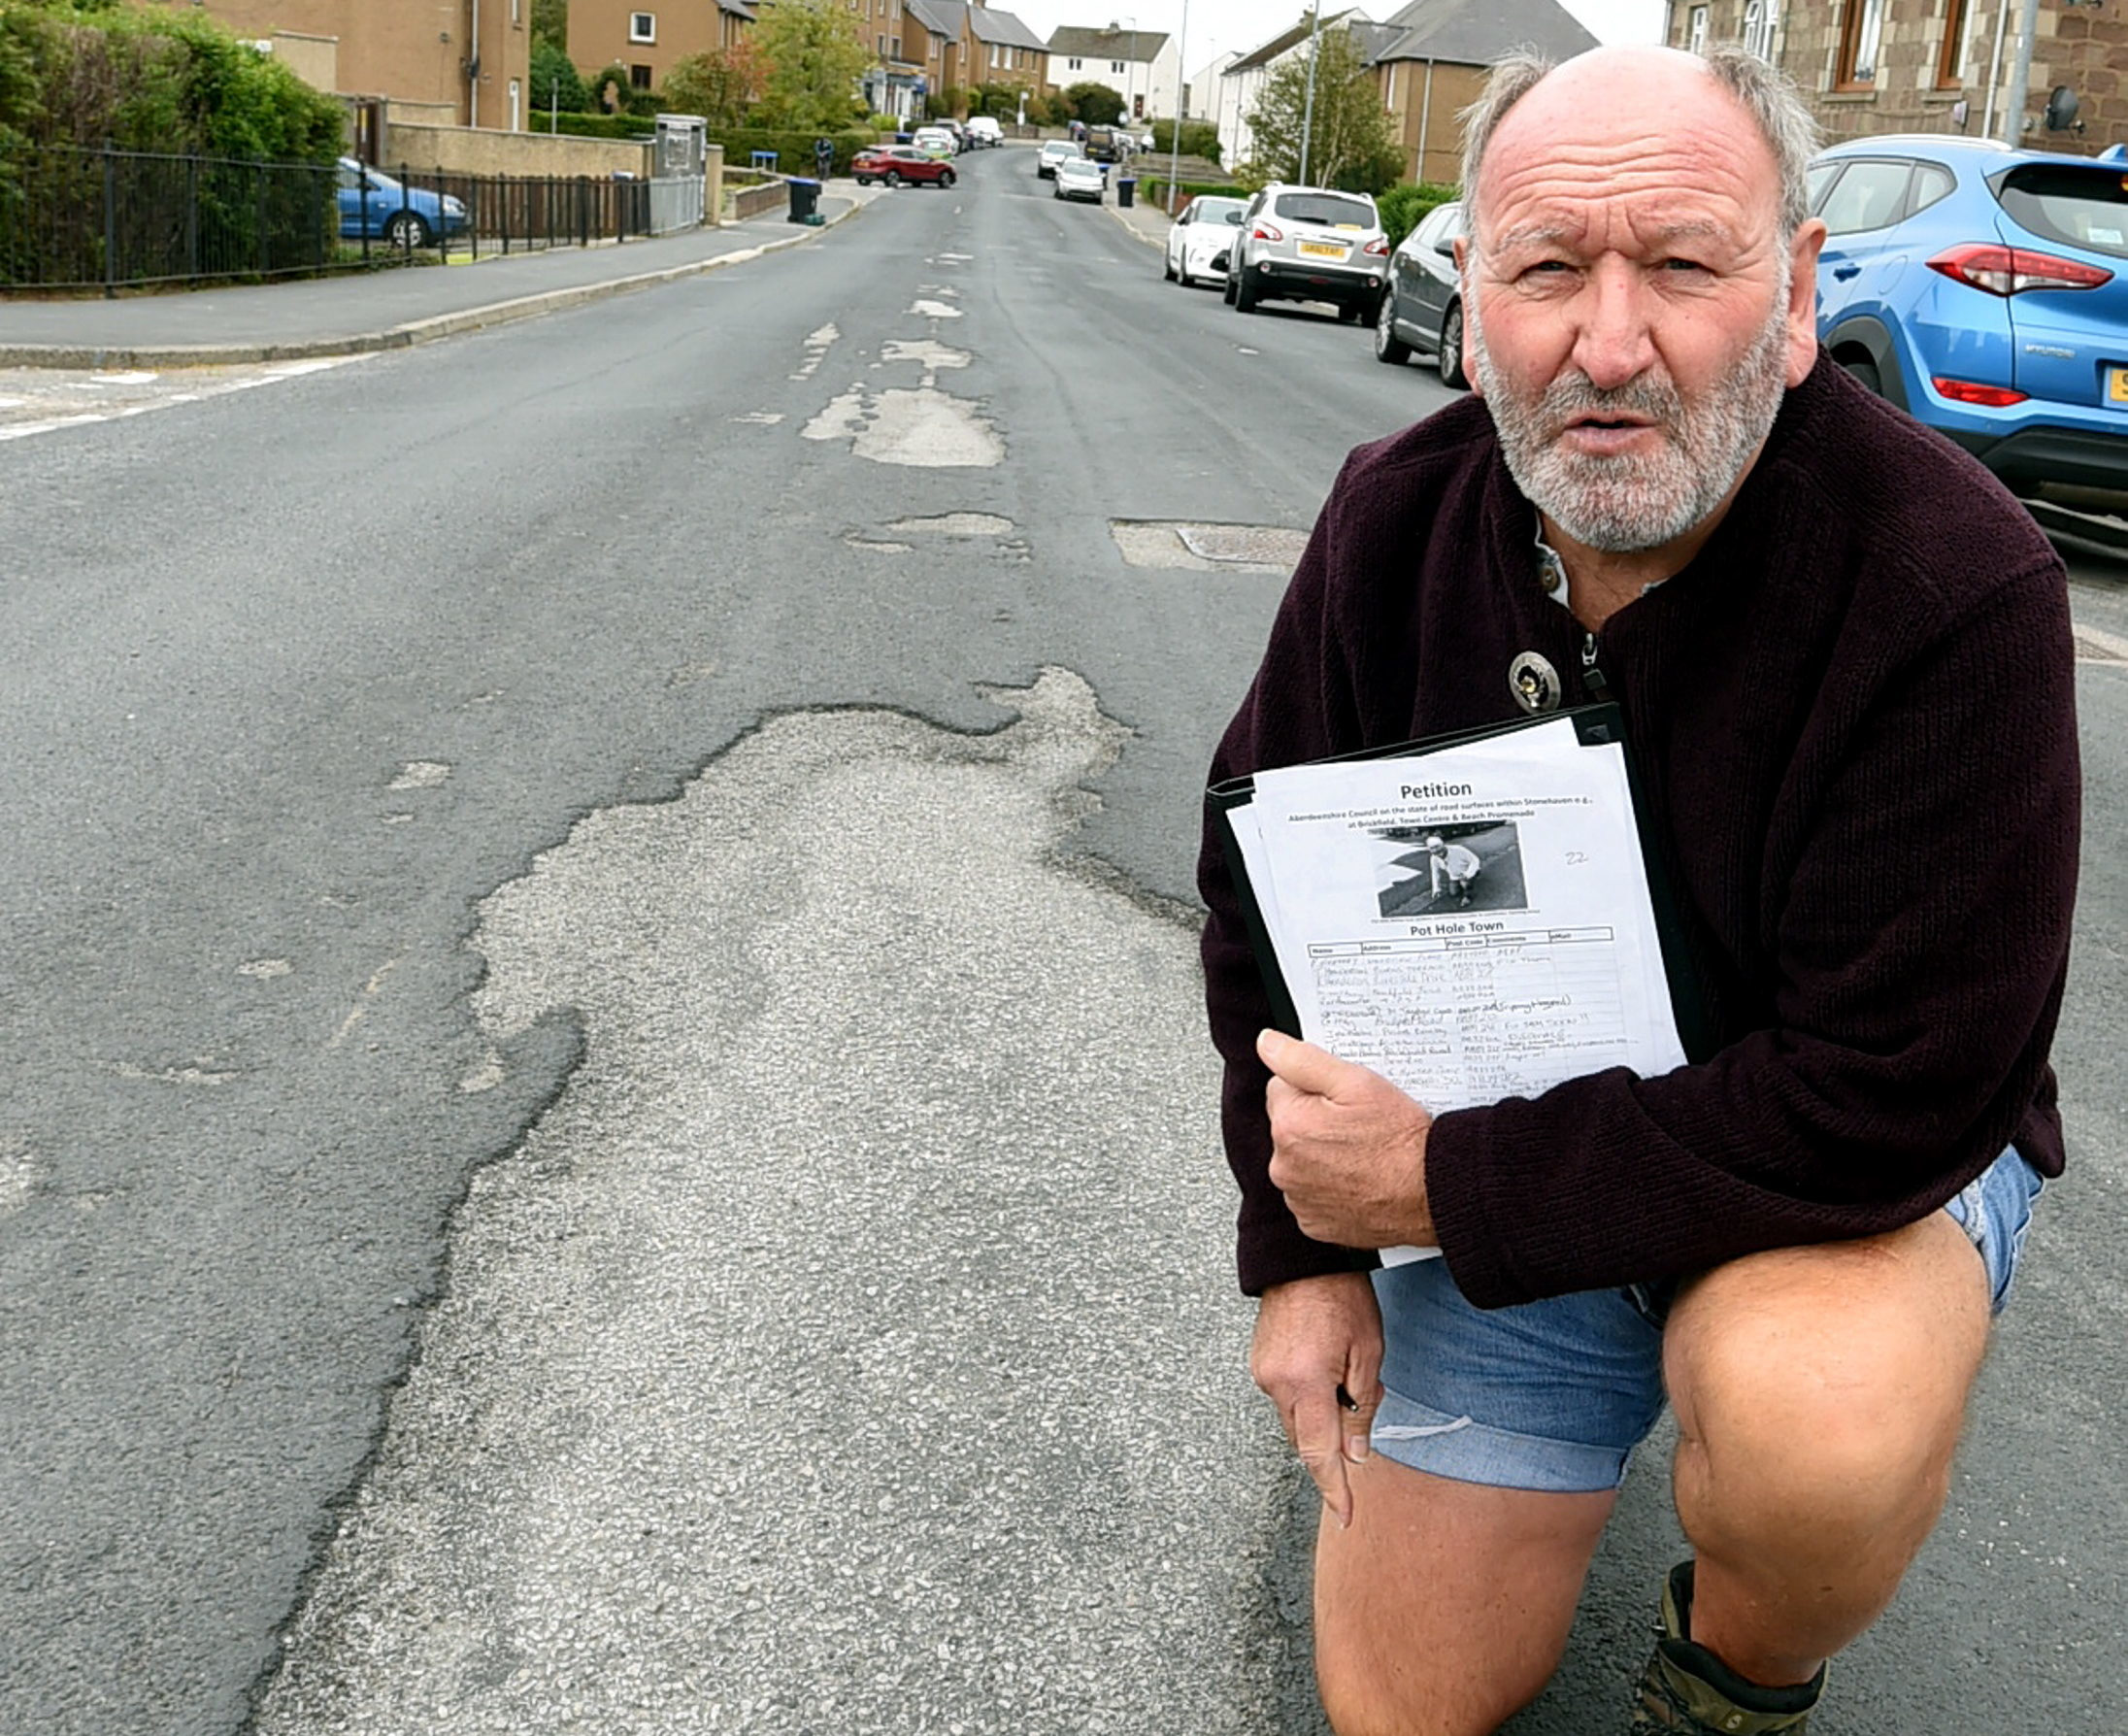 Phil Mills-Bishop with his pothole petition.